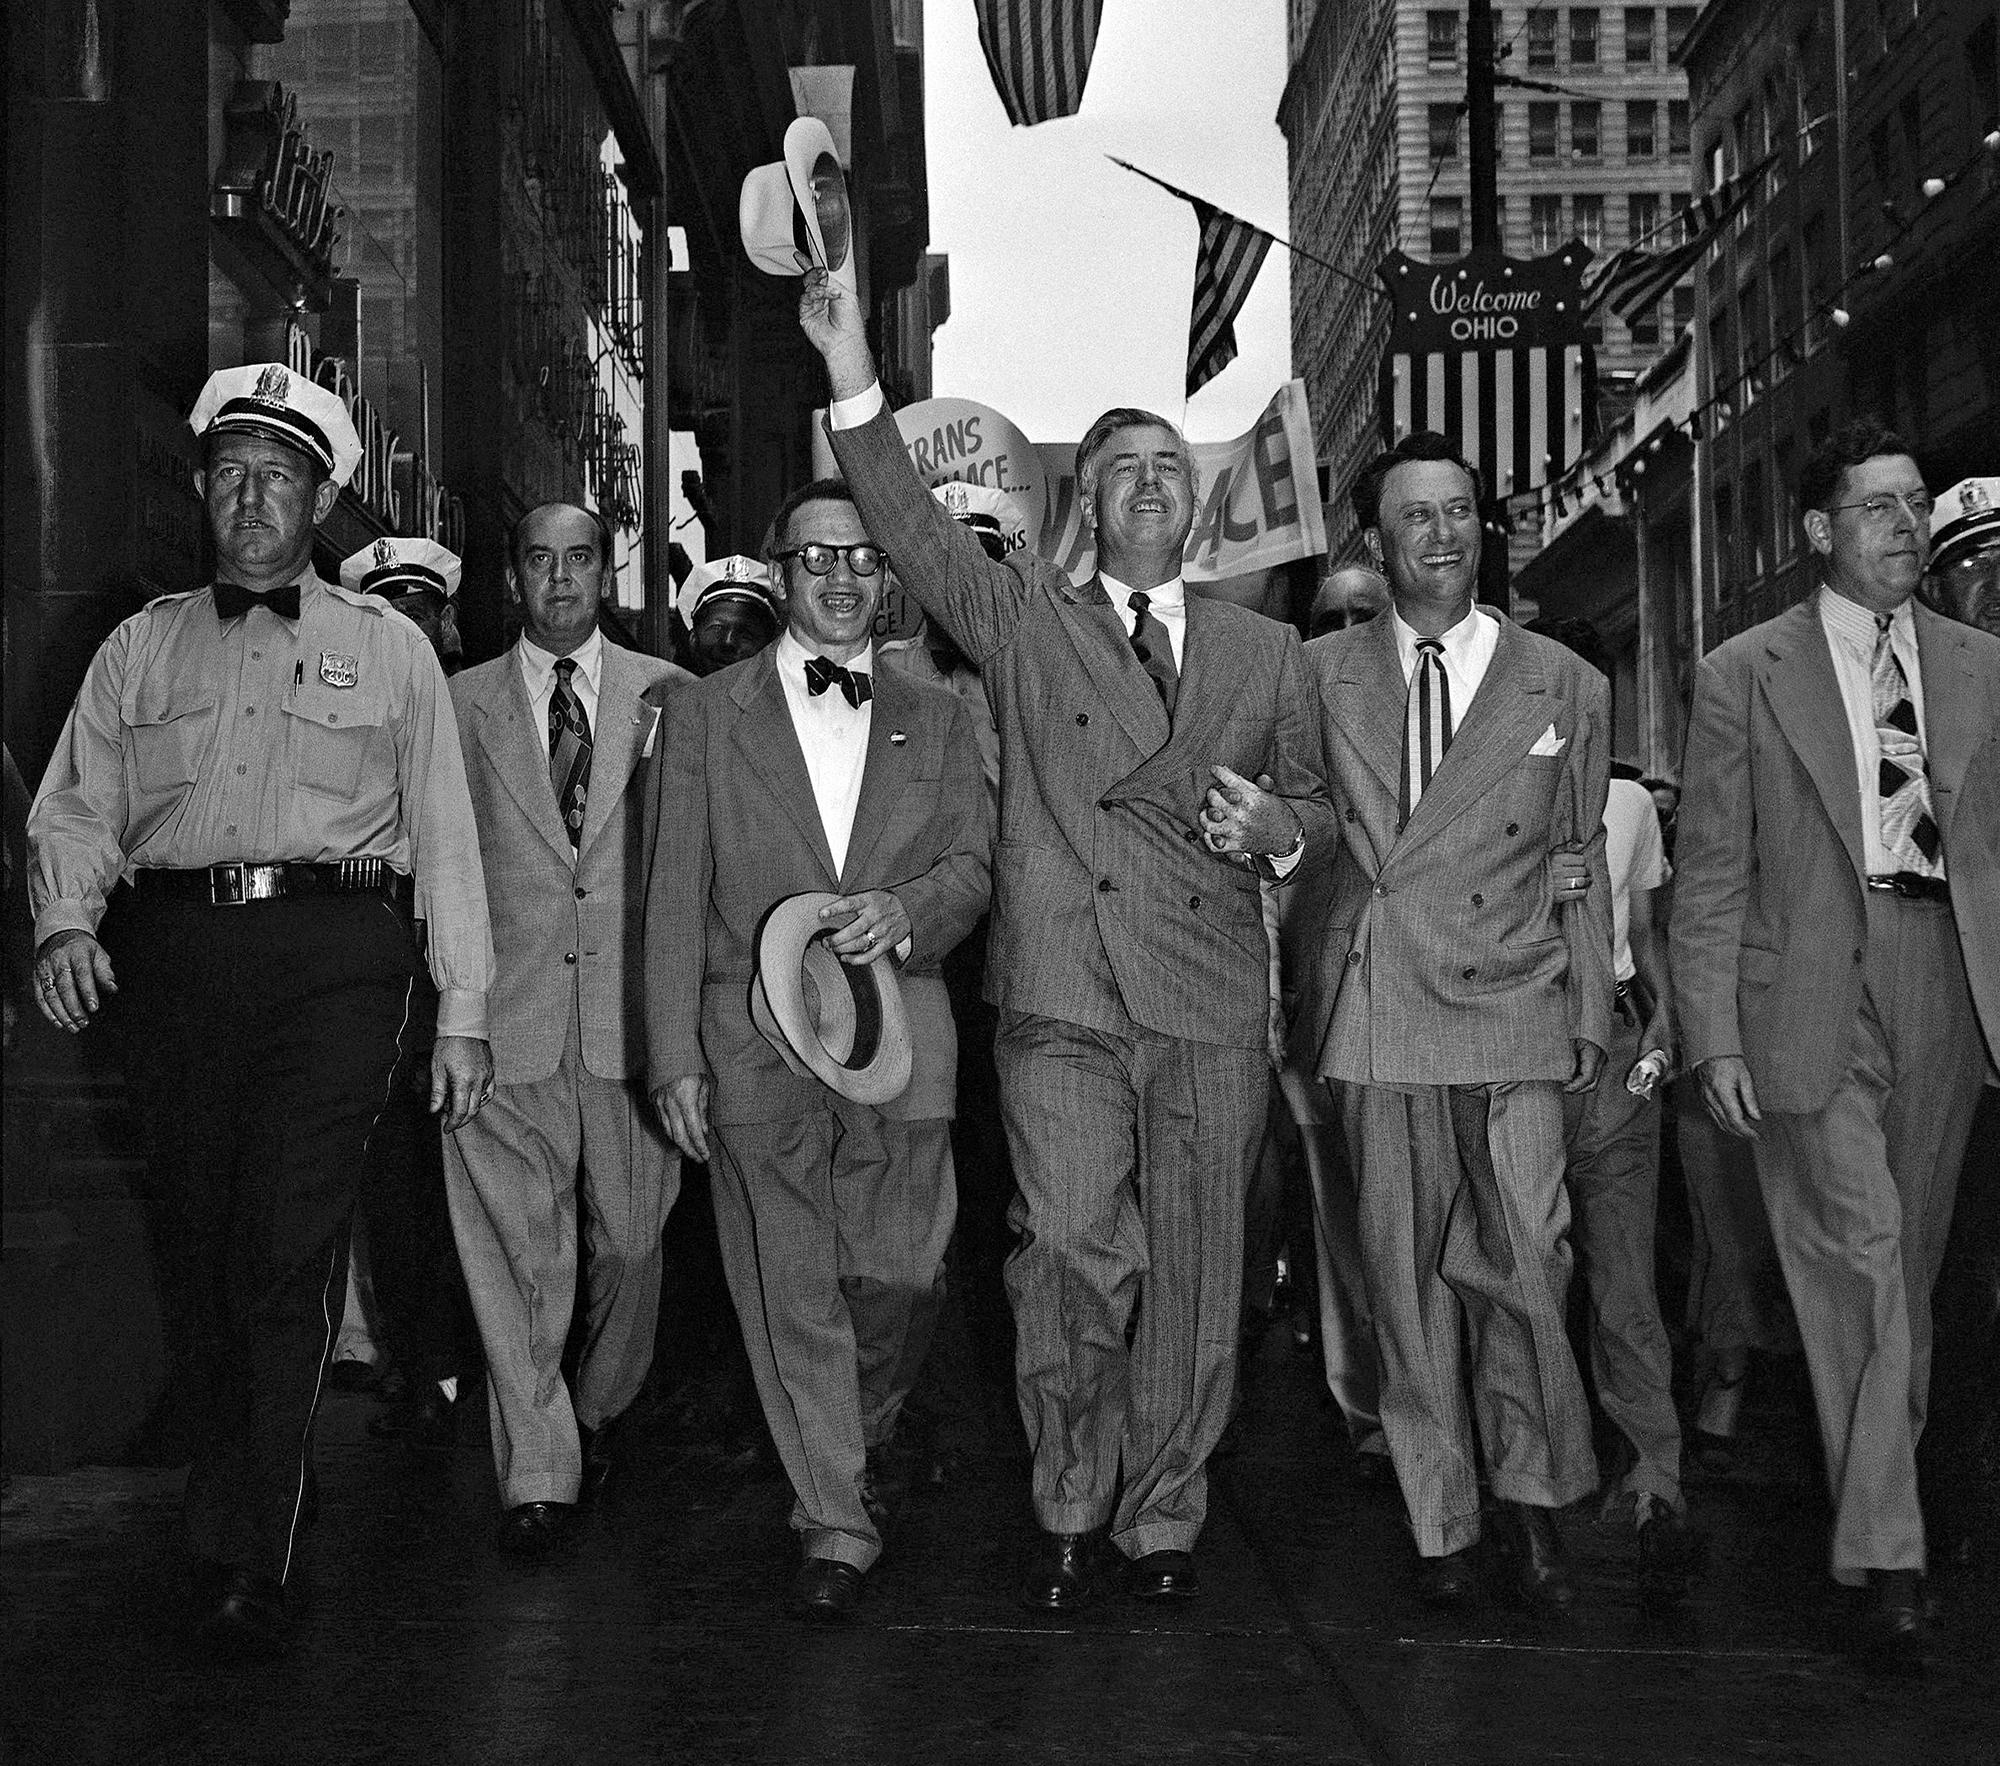 Henry A. Wallace, center, and his running mate, Sen. Glen Taylor, right, walk to their hotel in Philadelphia on July 23, 1948, after Wallace's arrival for the Progressive Party convention. (Photo: AP)